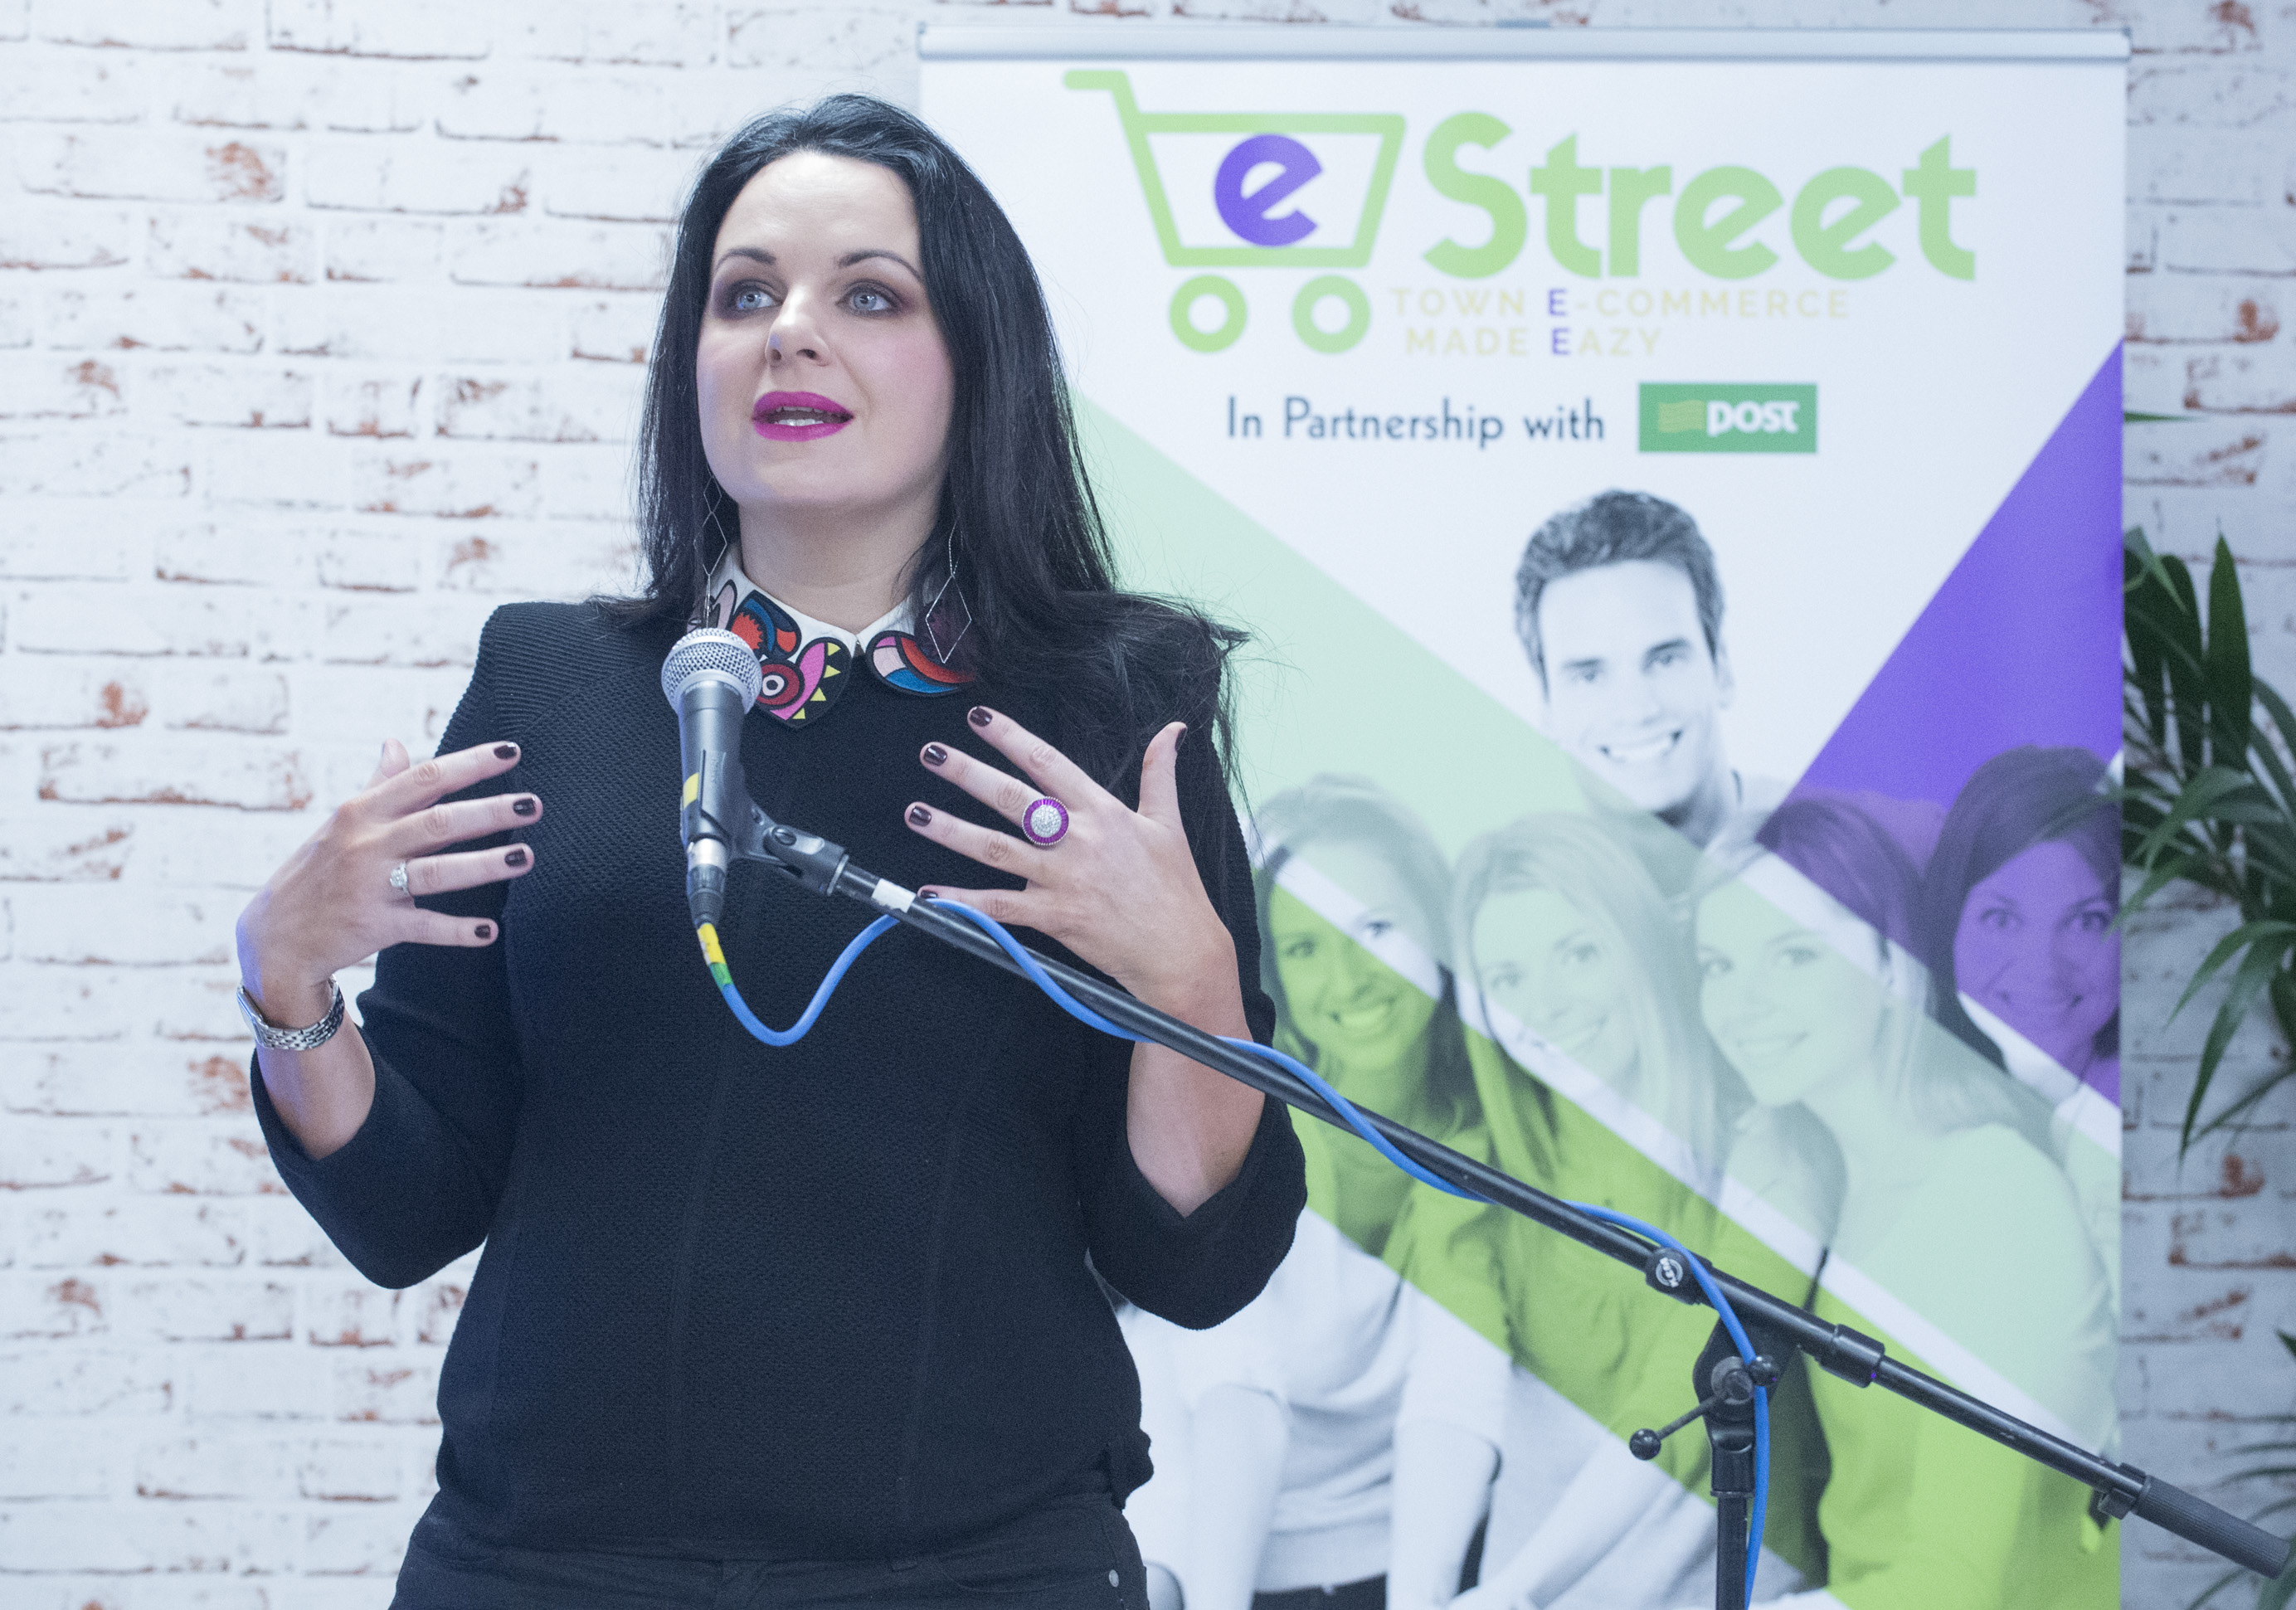 eStreet.ie encourages Skibbereen shops to sell online